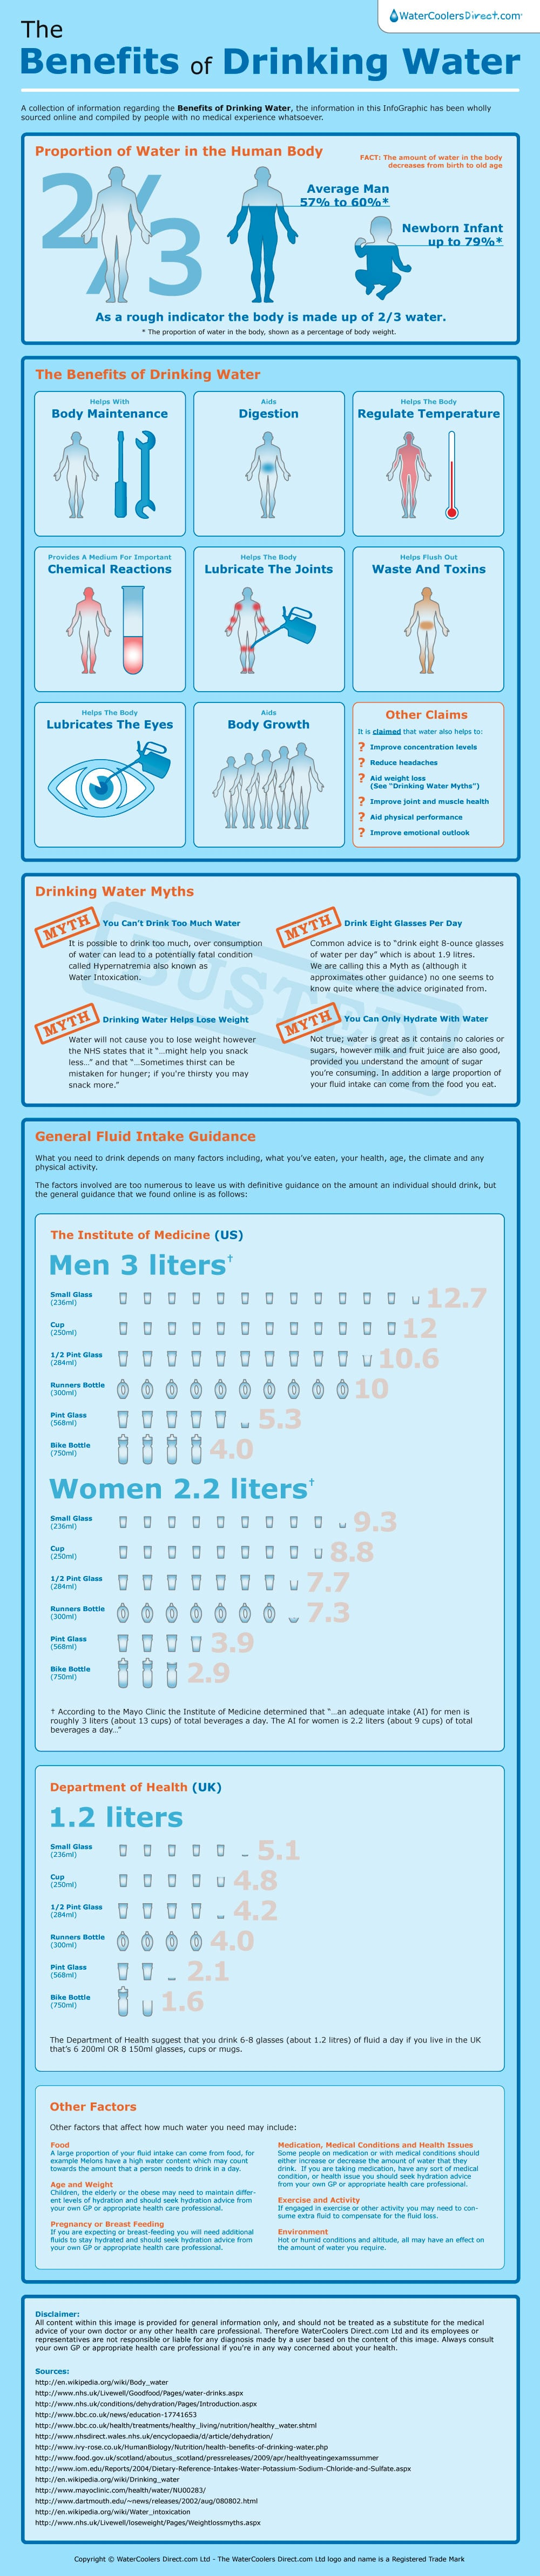 Cracking Myths About Drinking Water [Infographic]